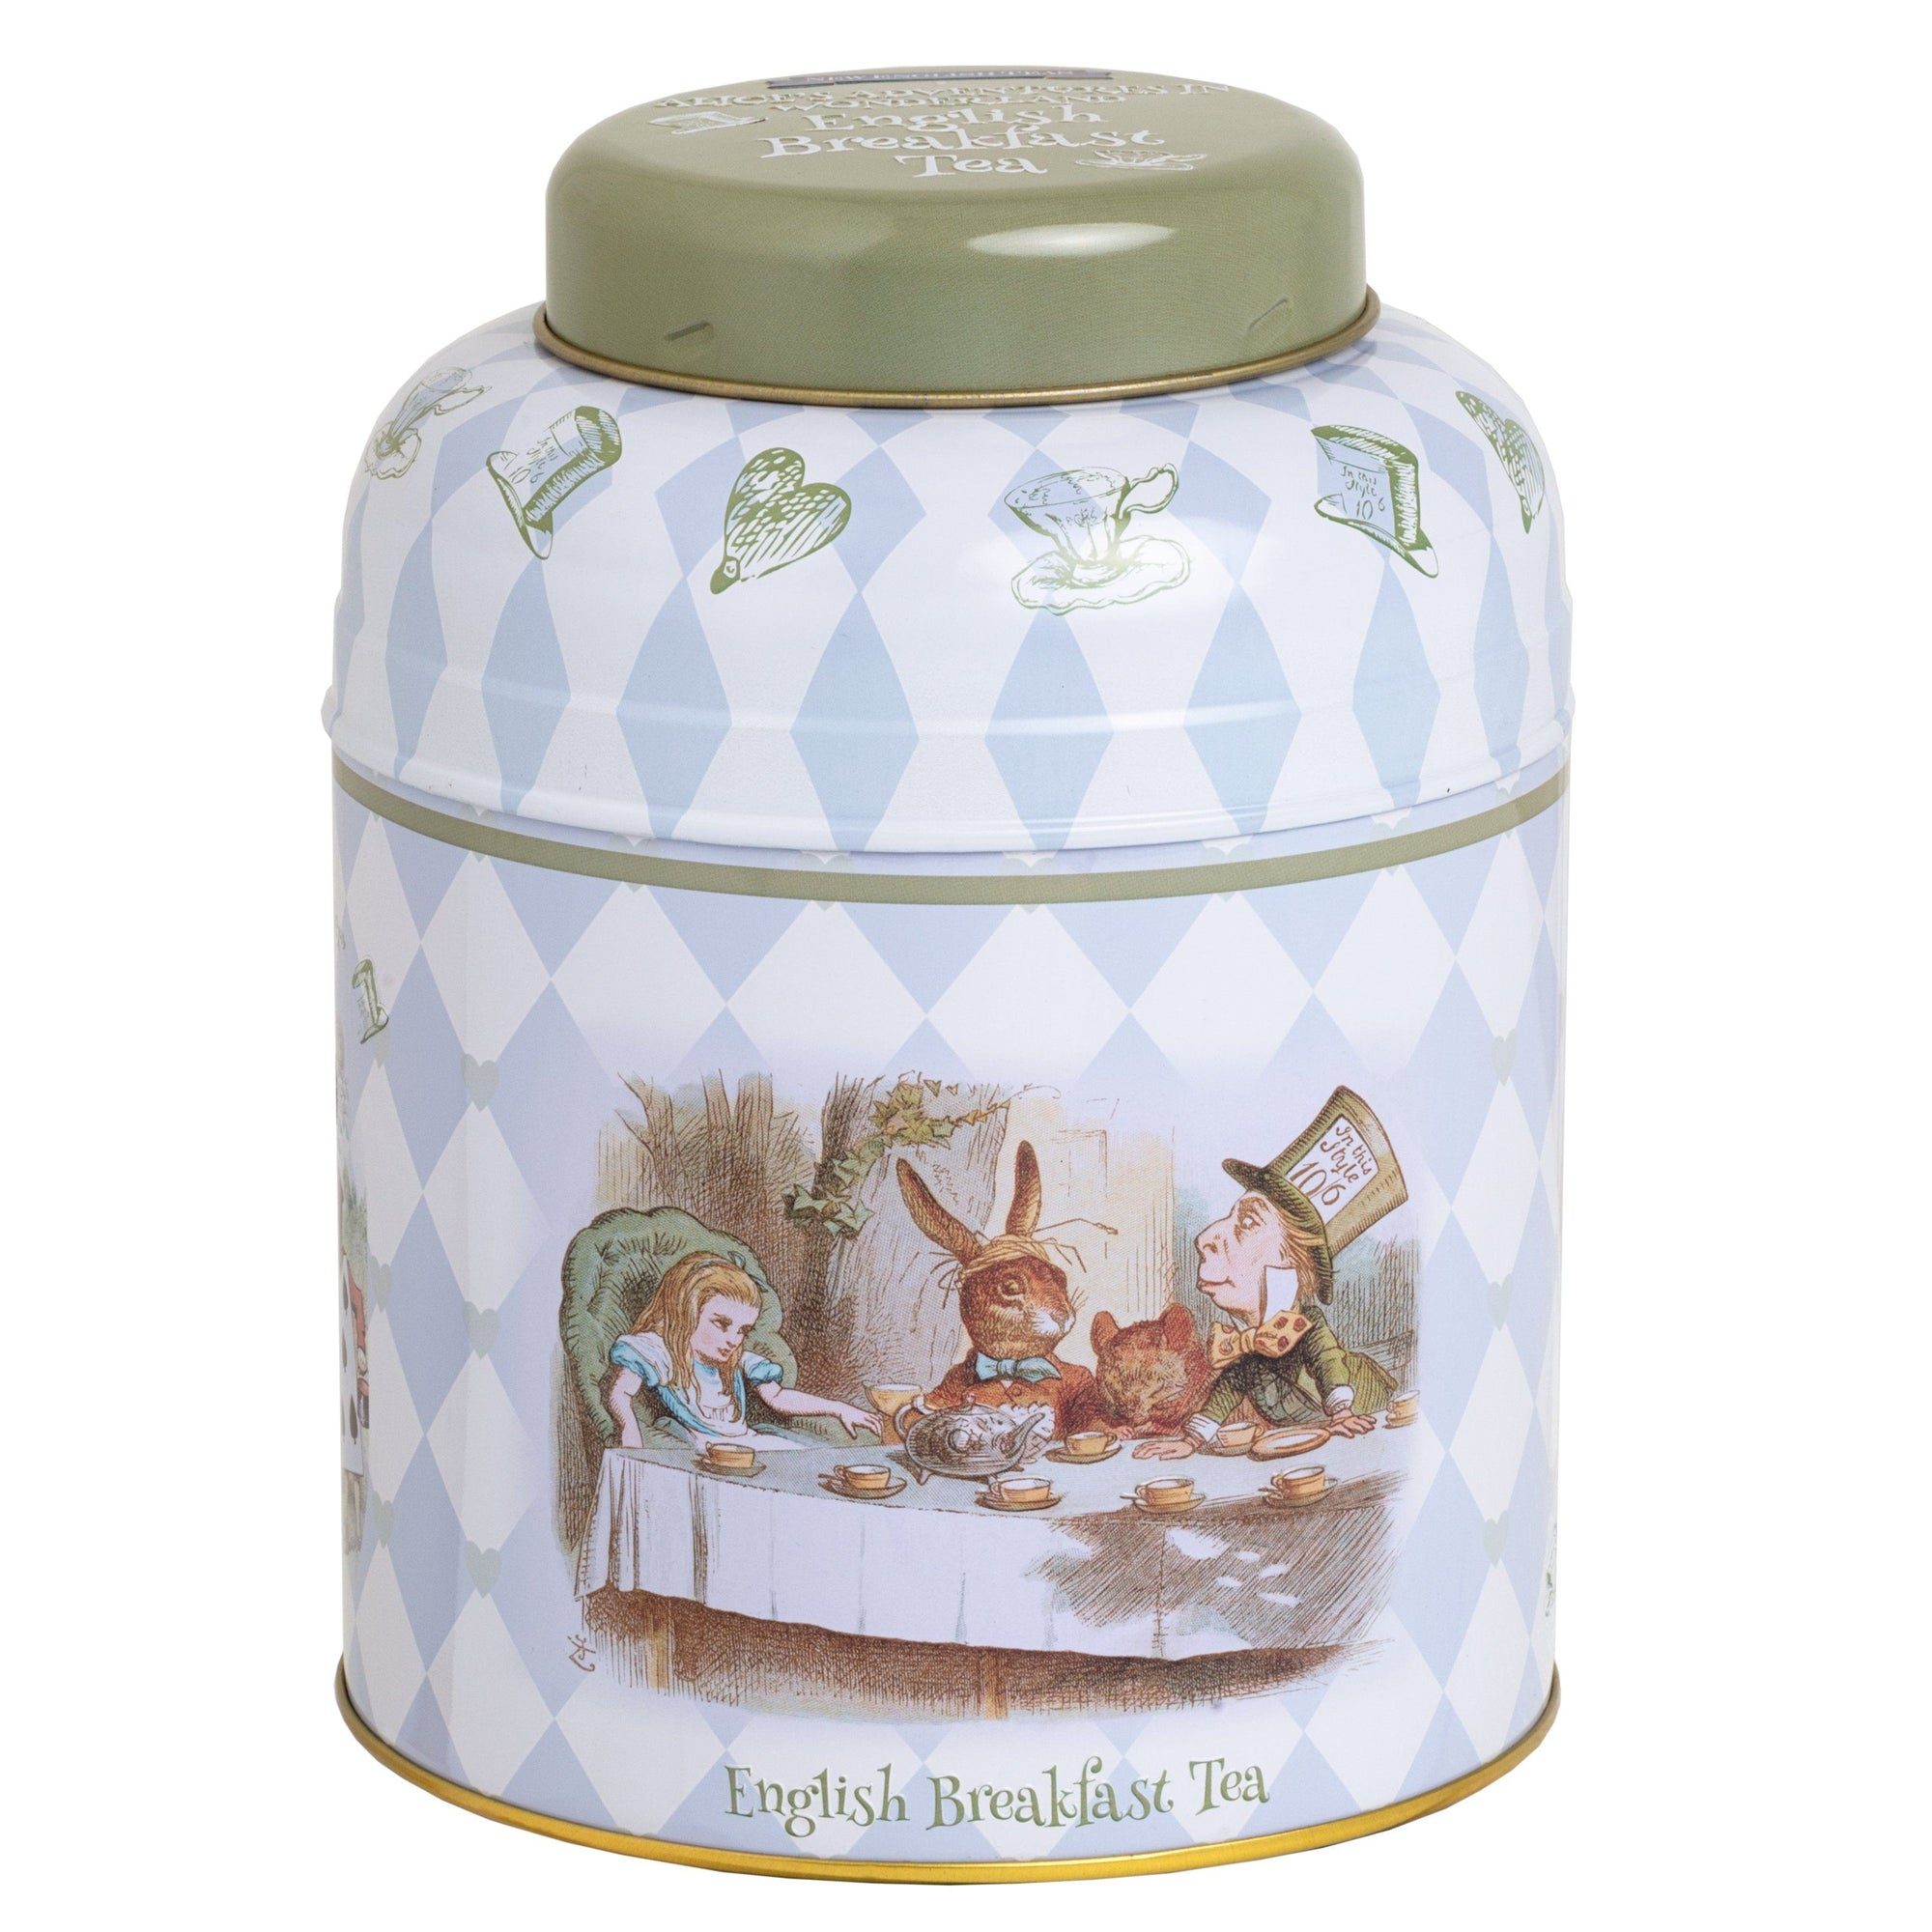 Alice in Wonderland Tea Caddy with 80 English Breakfast Teabags Black Tea New English Teas